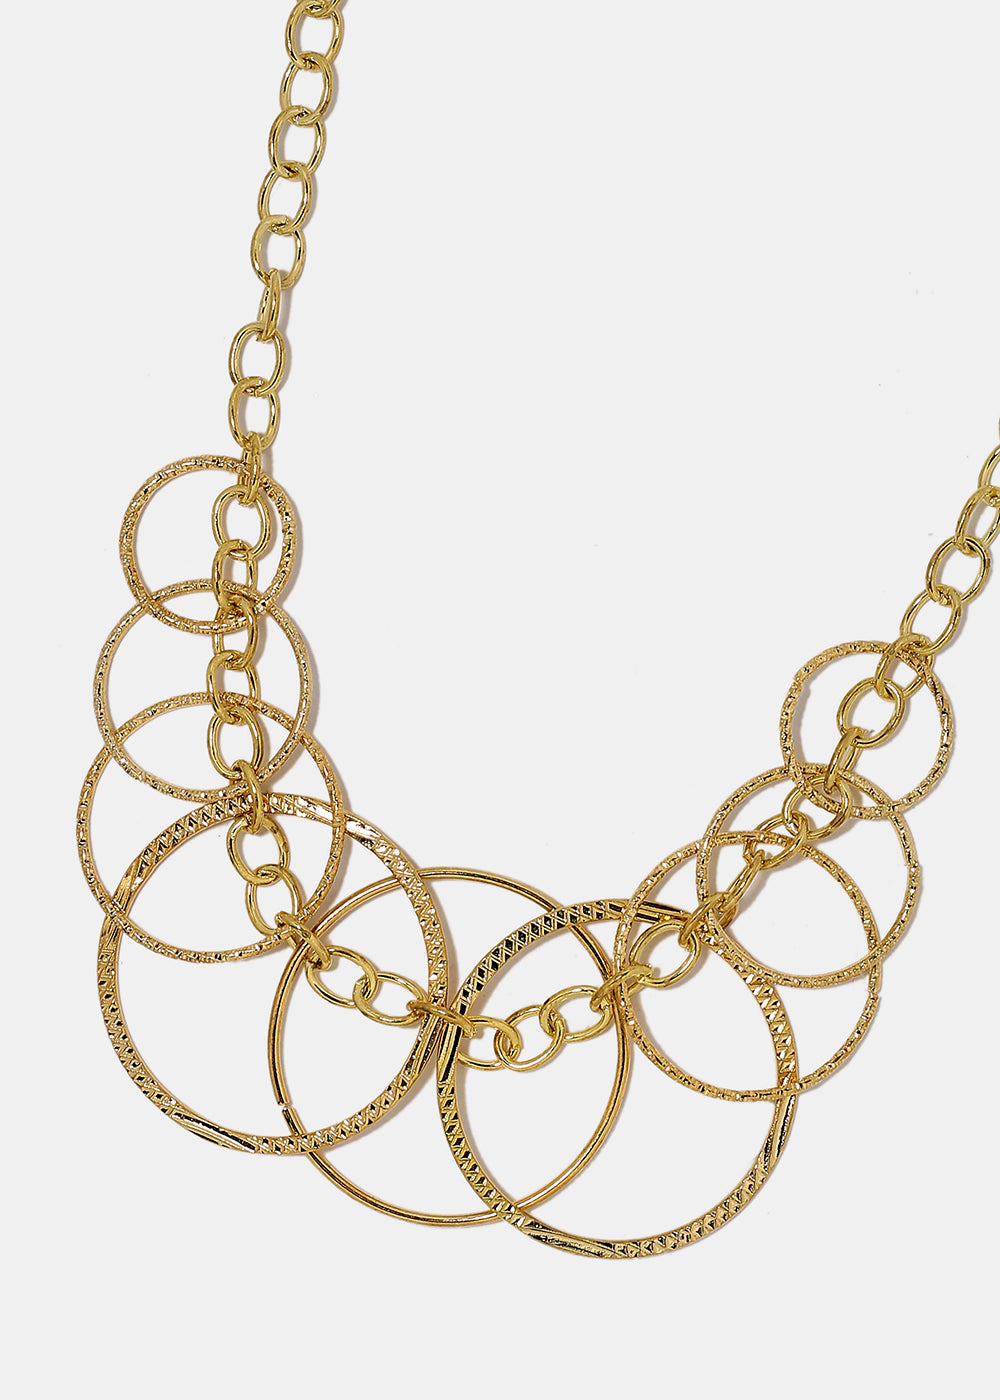 Linked Circle Chain Necklace